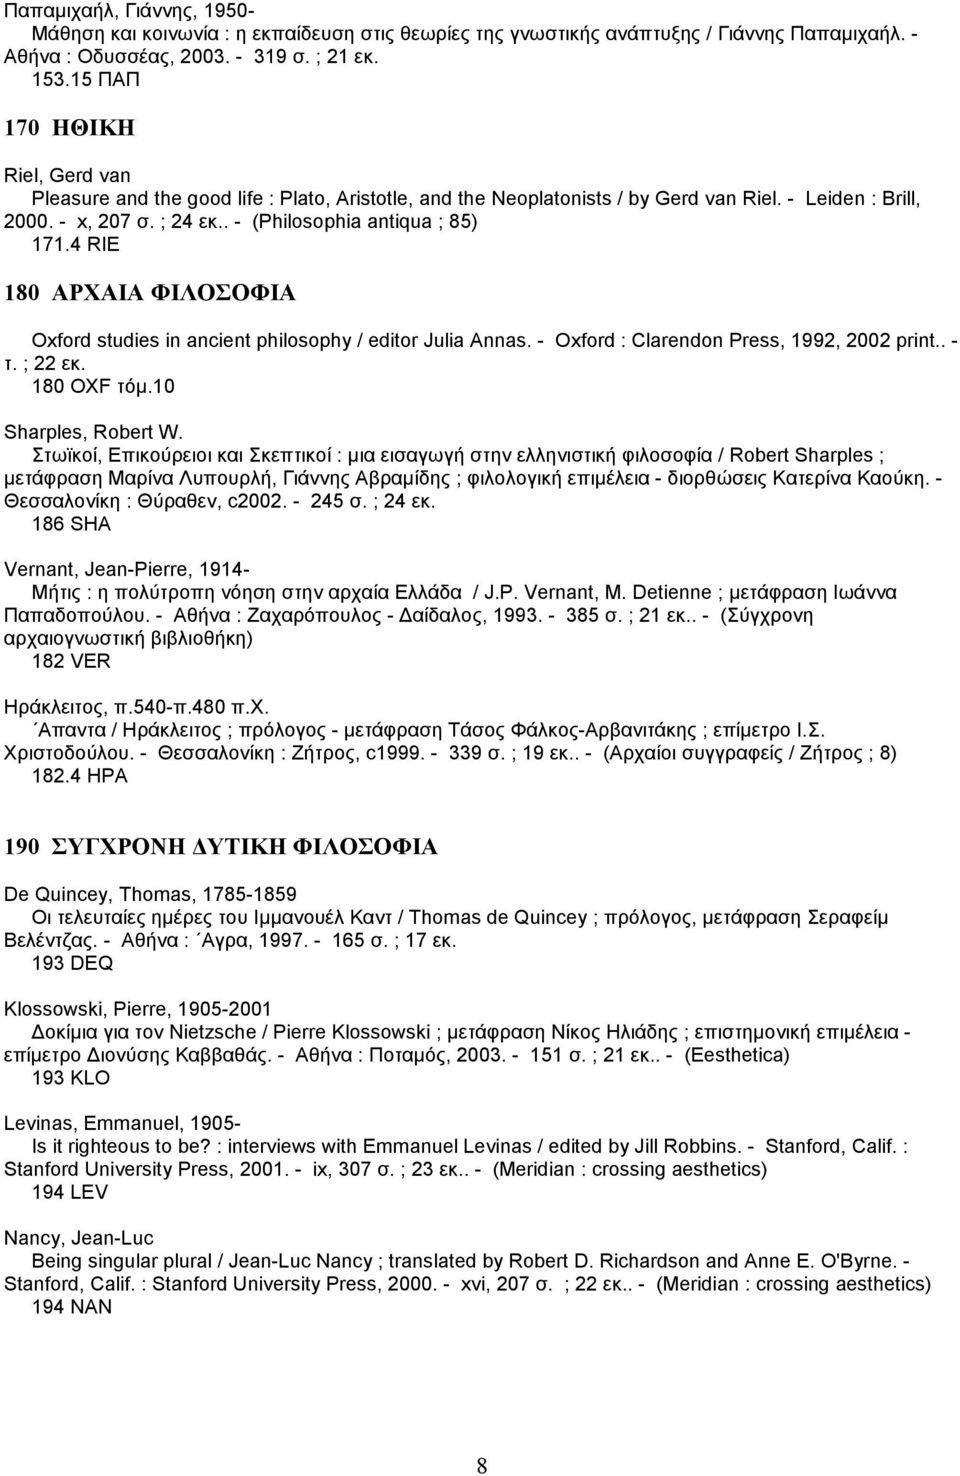 4 RIE 180 ΑΡΧΑΙΑ ΦΙΛΟΣΟΦΙΑ Oxford studies in ancient philosophy / editor Julia Annas. - Oxford : Clarendon Press, 1992, 2002 print.. - τ. ; 22 εκ. 180 OXF τόµ.10 Sharples, Robert W.